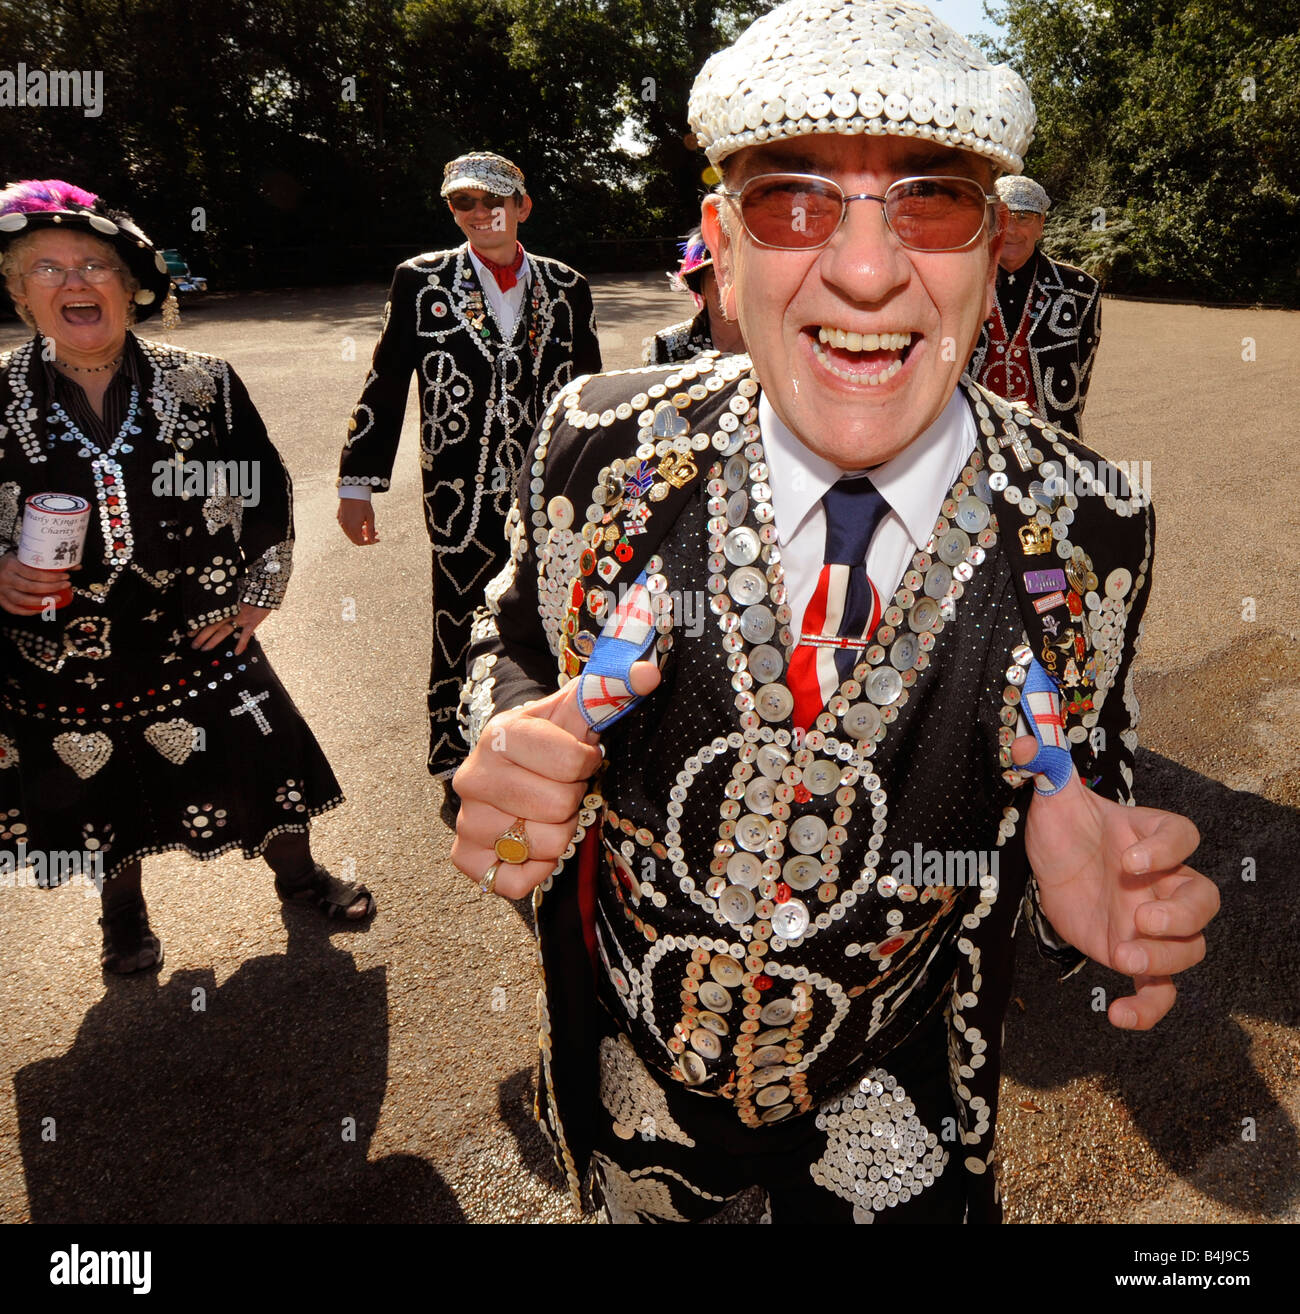 The Pearly Kings and Queens visit Chartwell in Kent. A very jolly gentleman laughs into the camera. - Stock Image